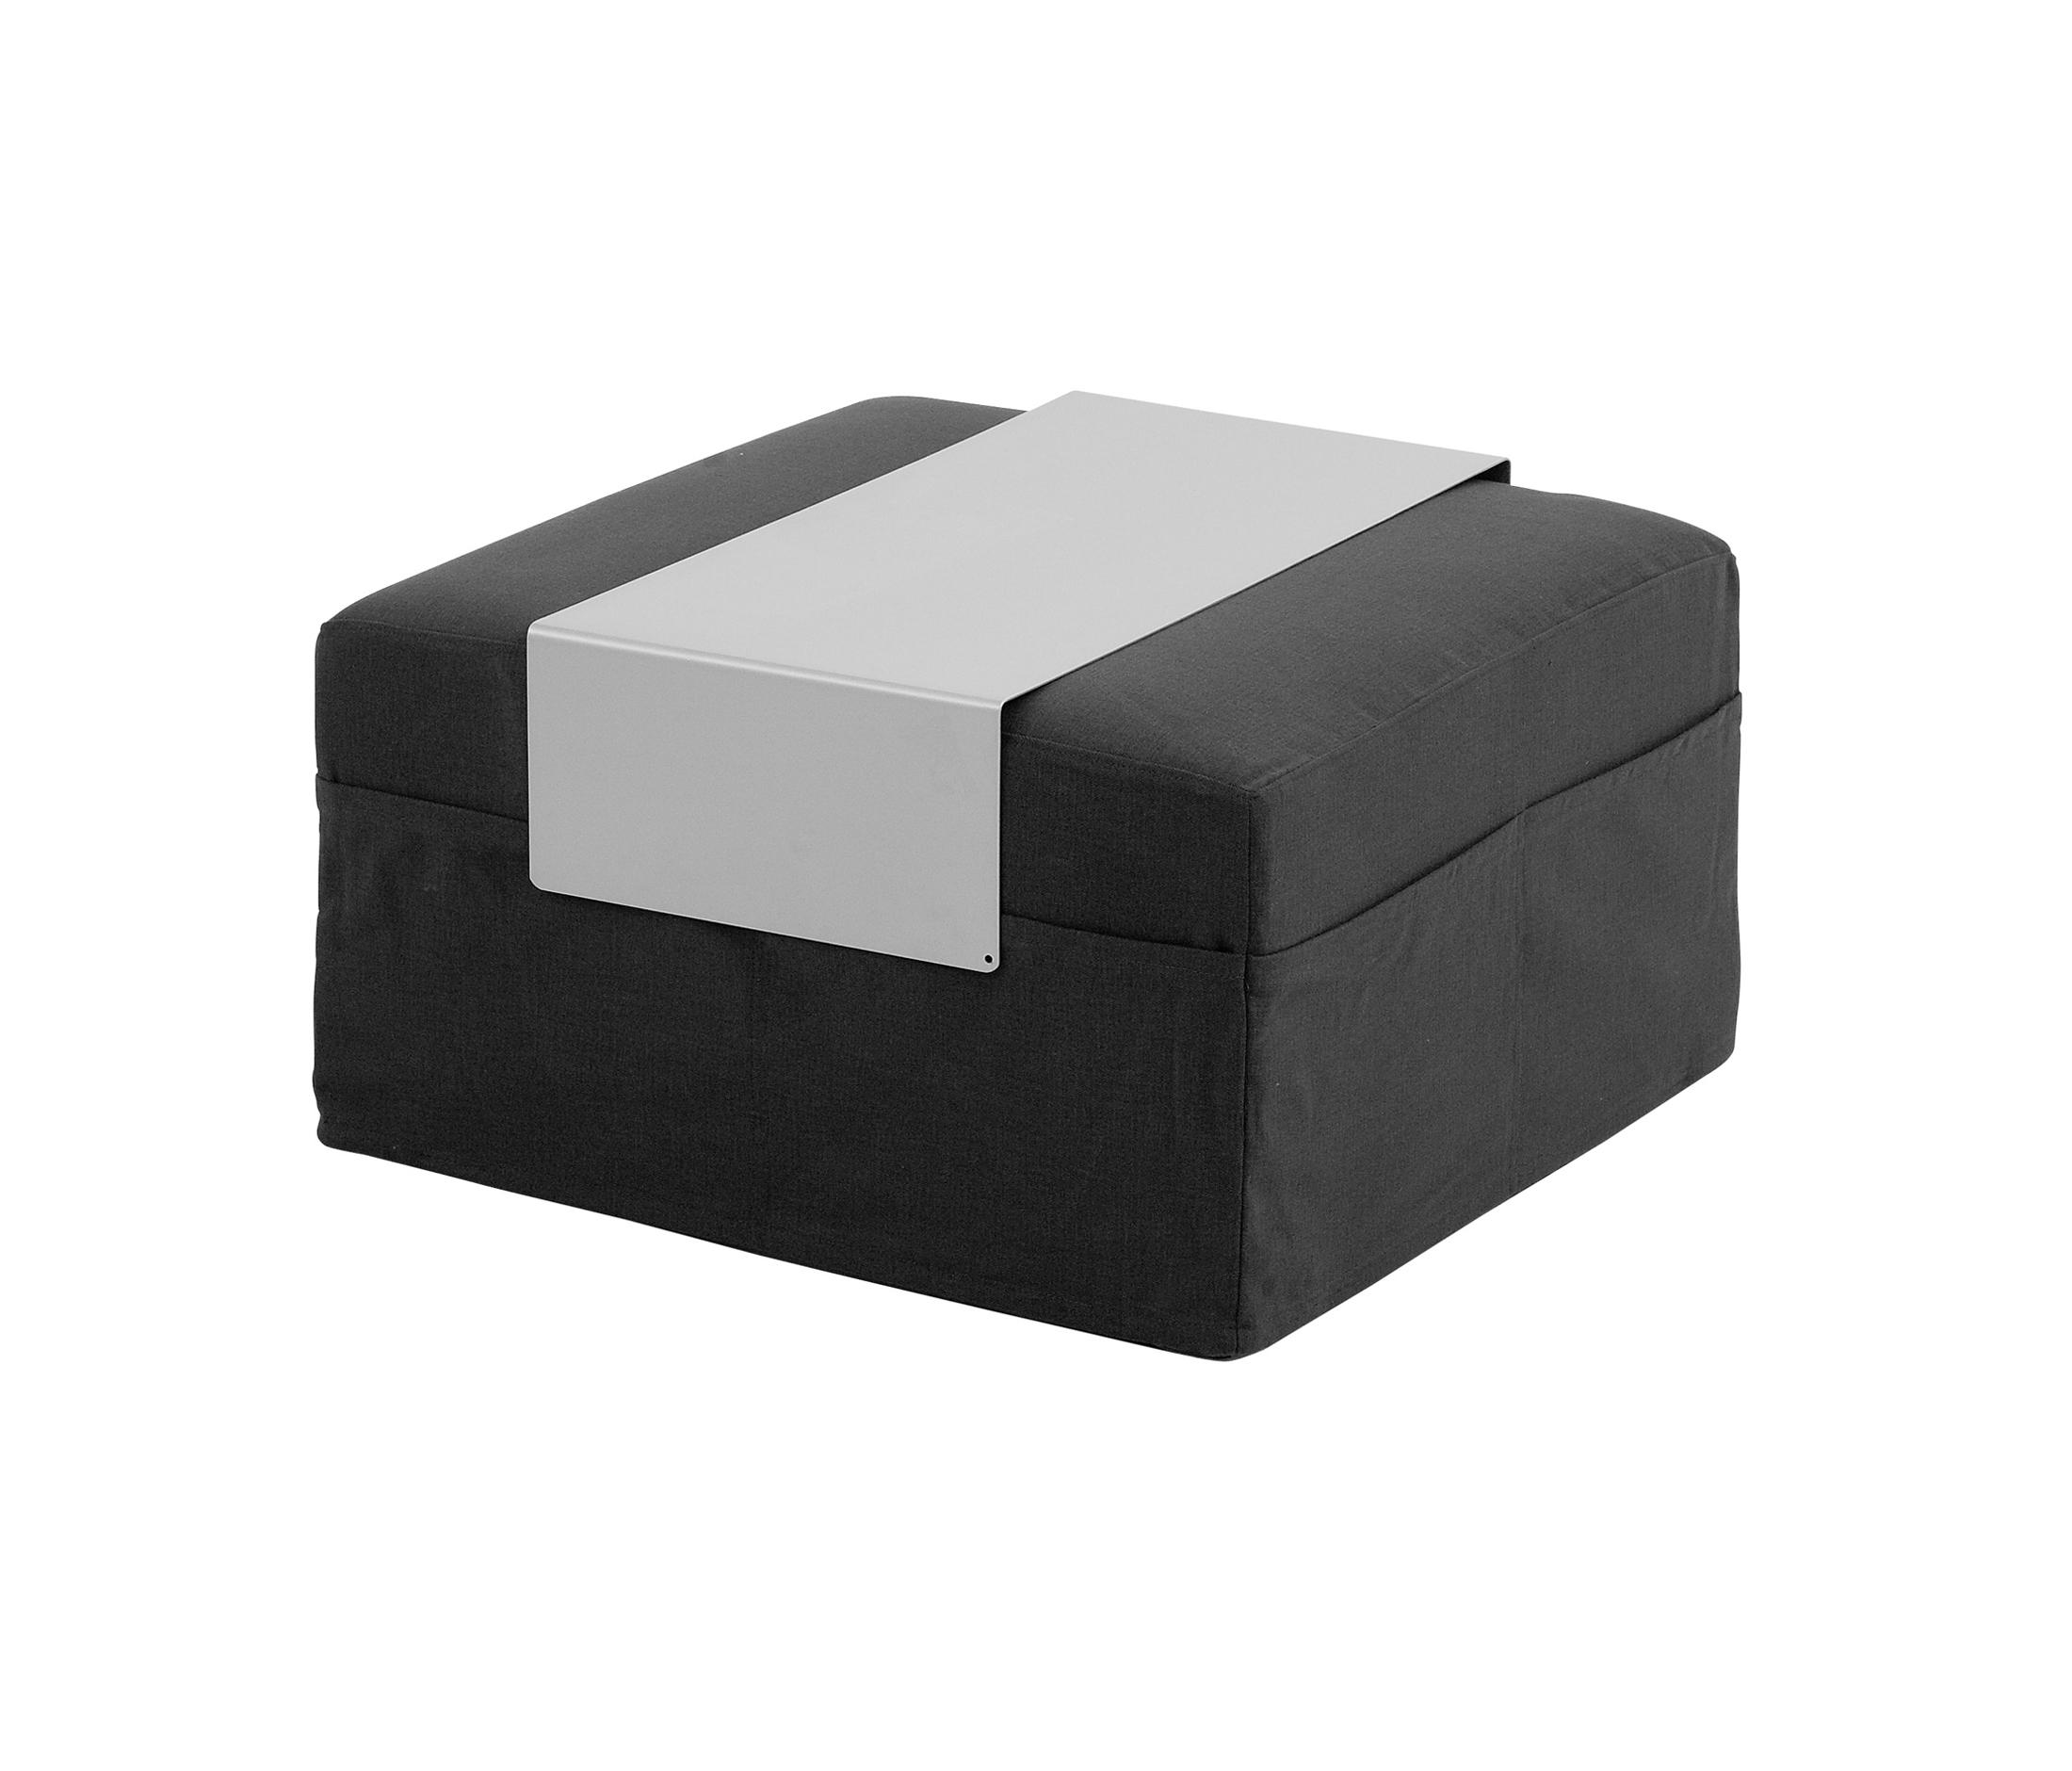 TRIO POUF - Poufs from Softline A/S | Architonic